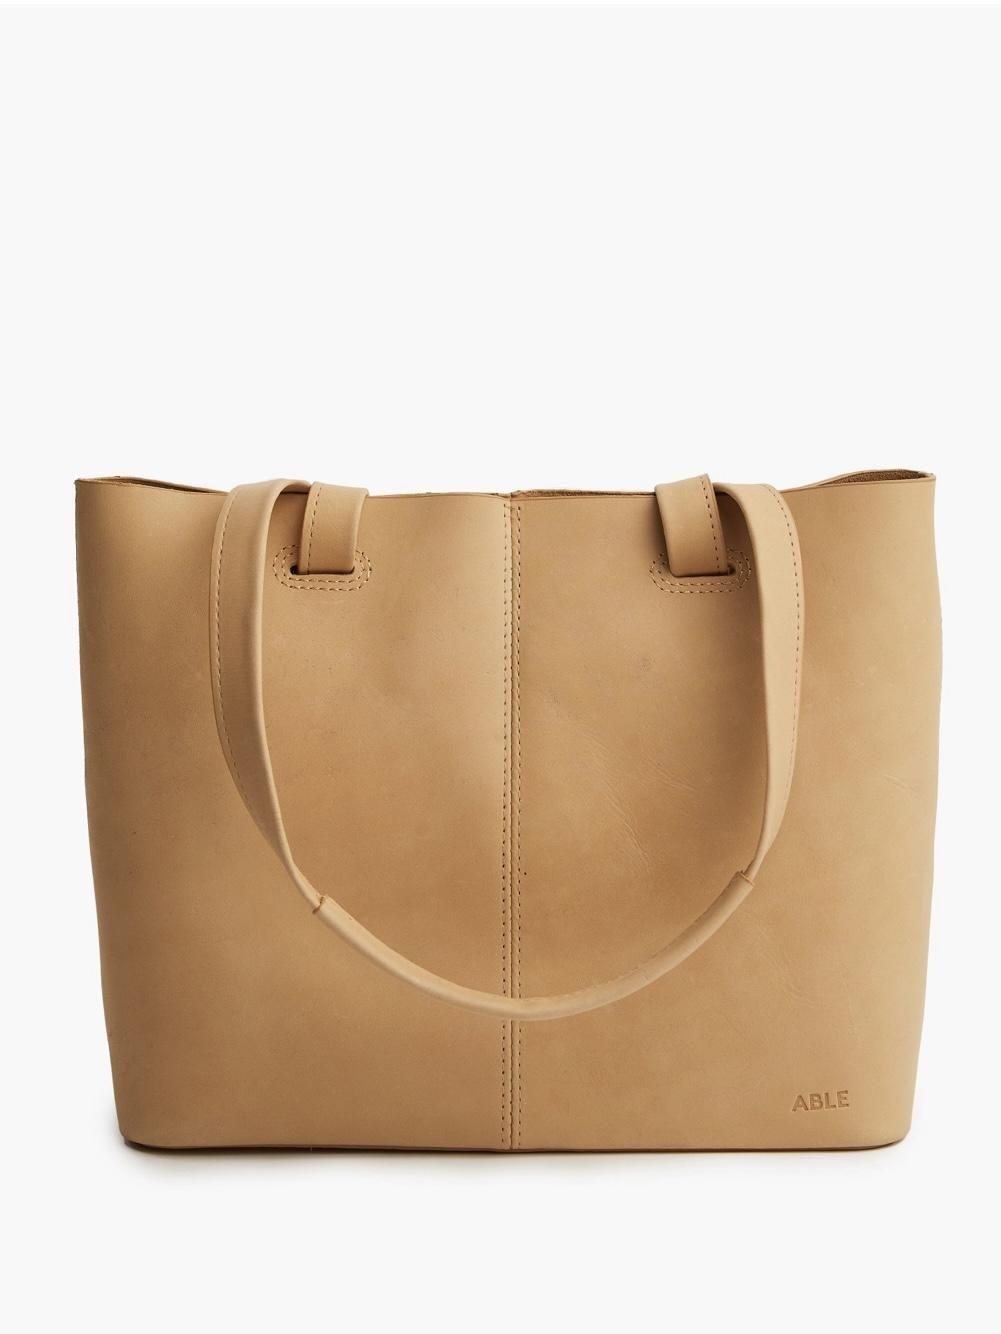 Able Nelita Shoulder Bag